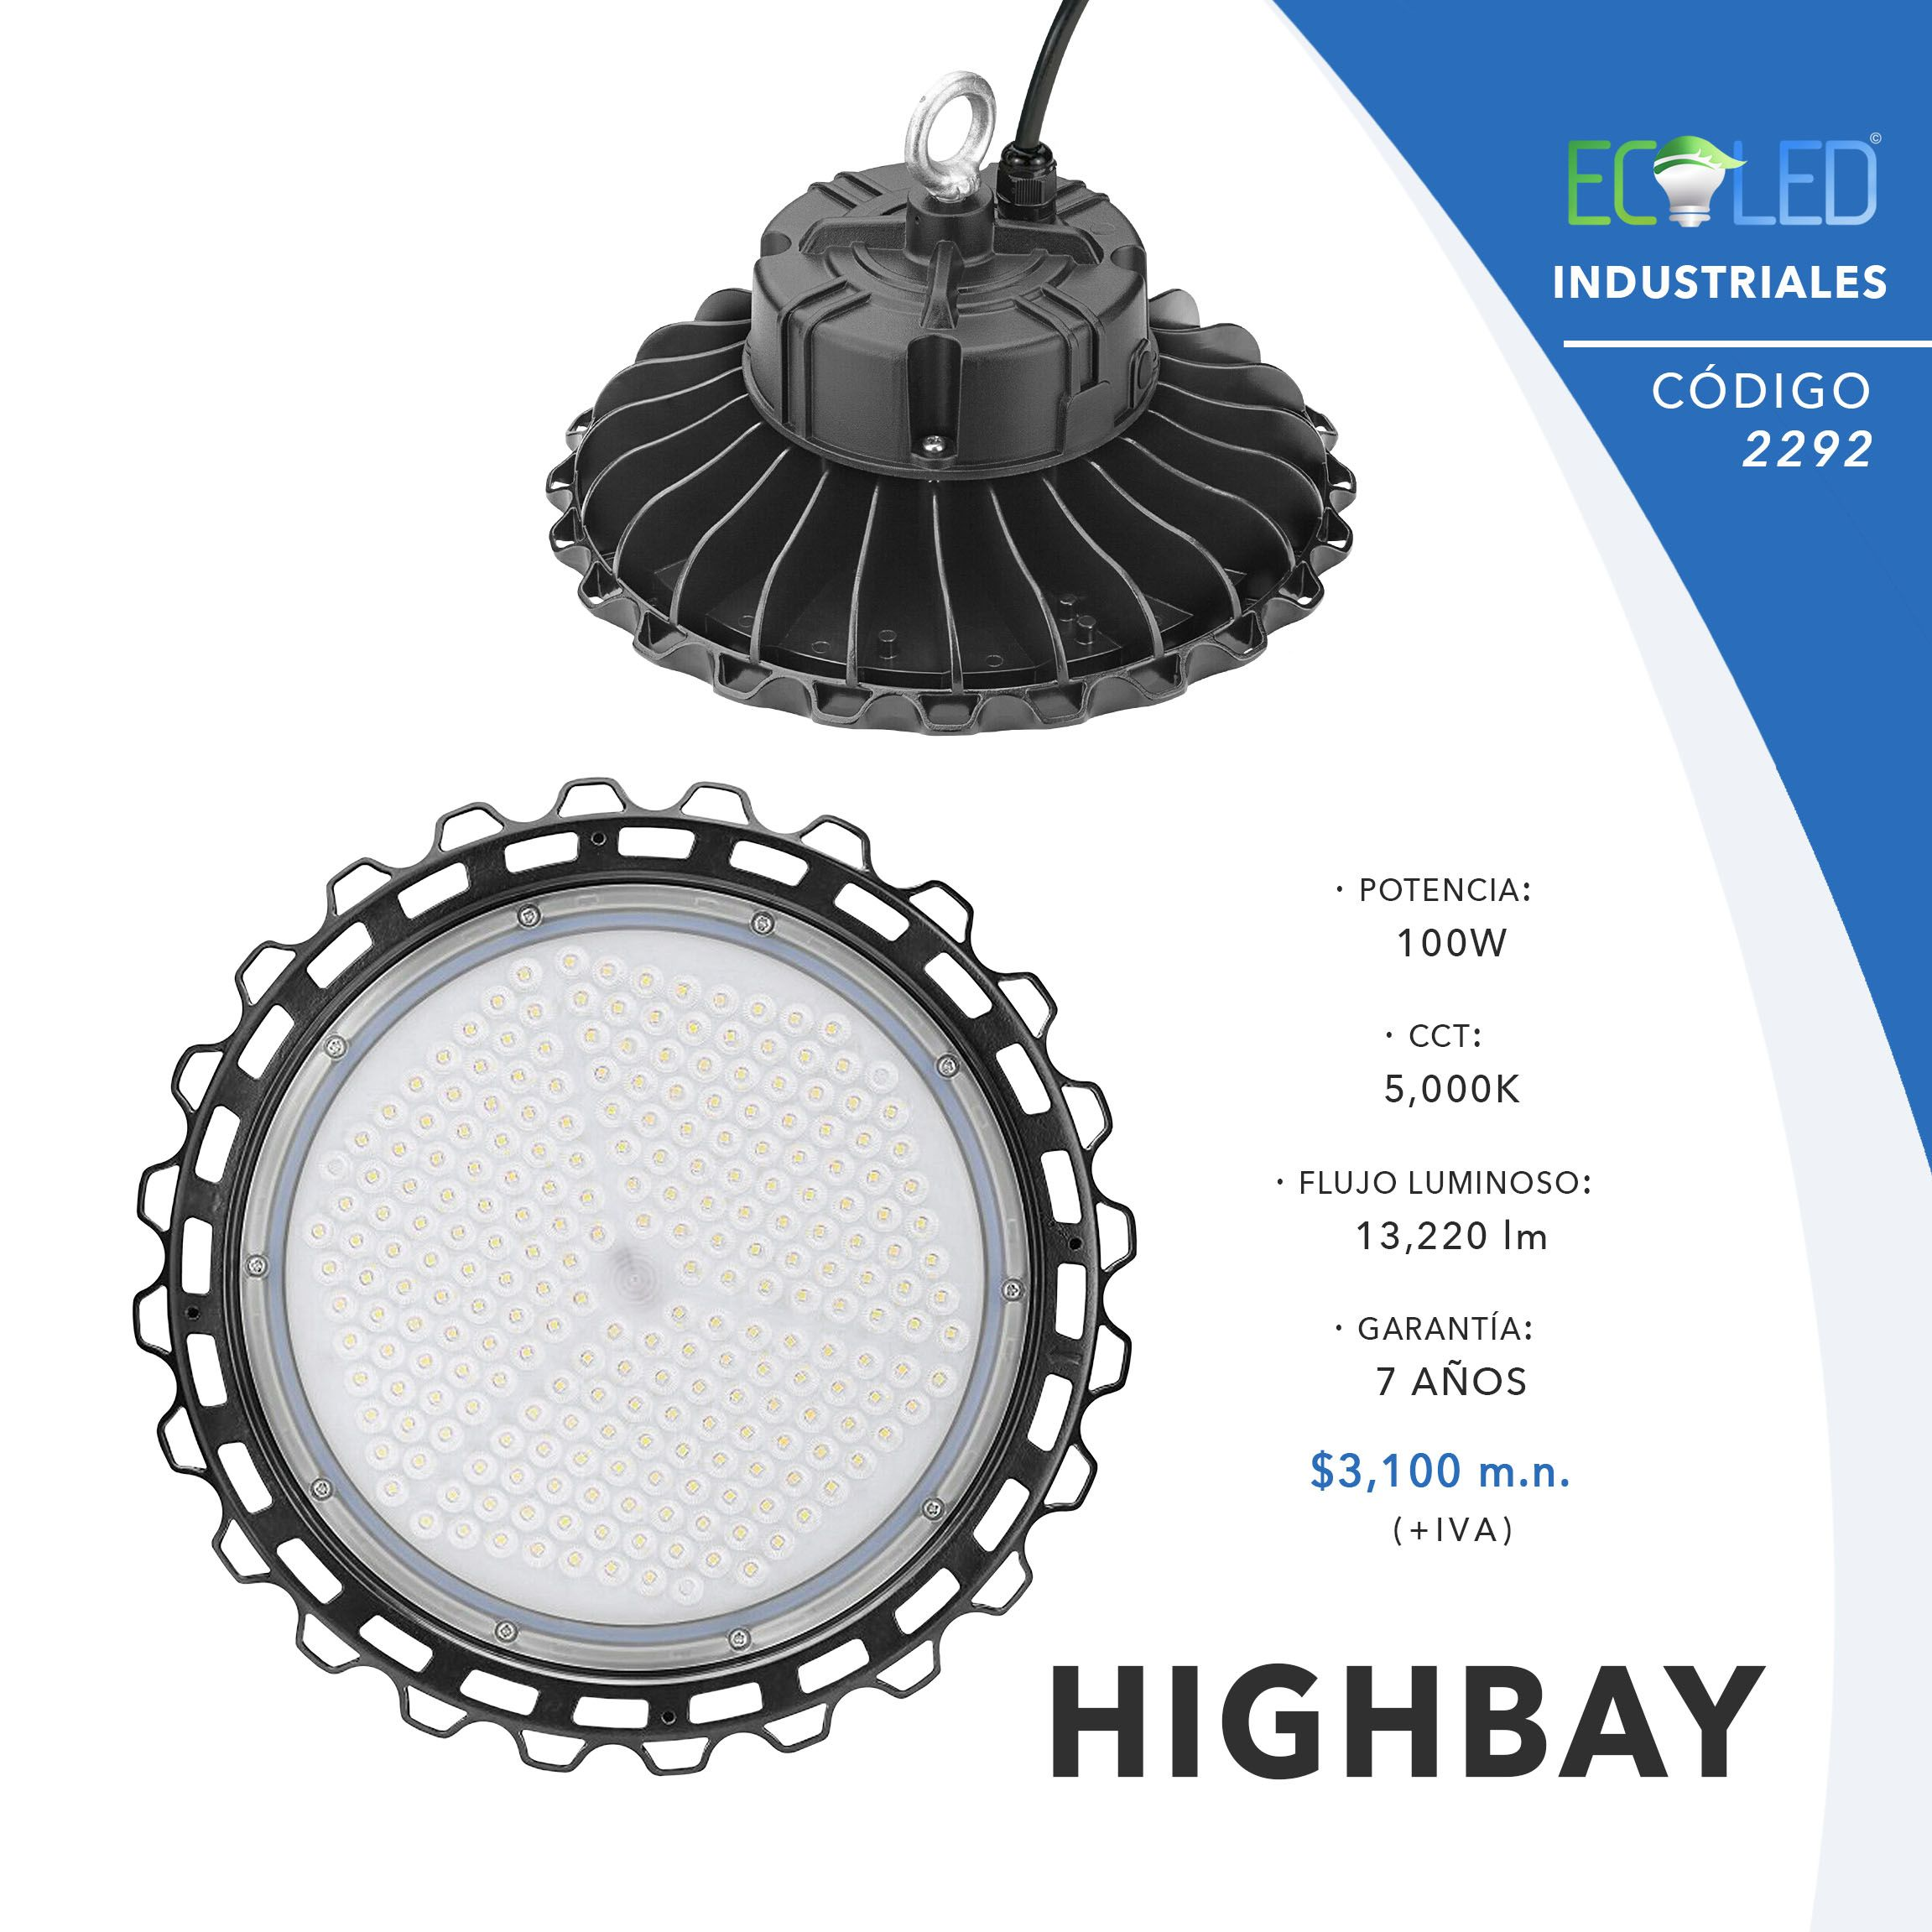 2292-UFO LED HIGHBAY-100W